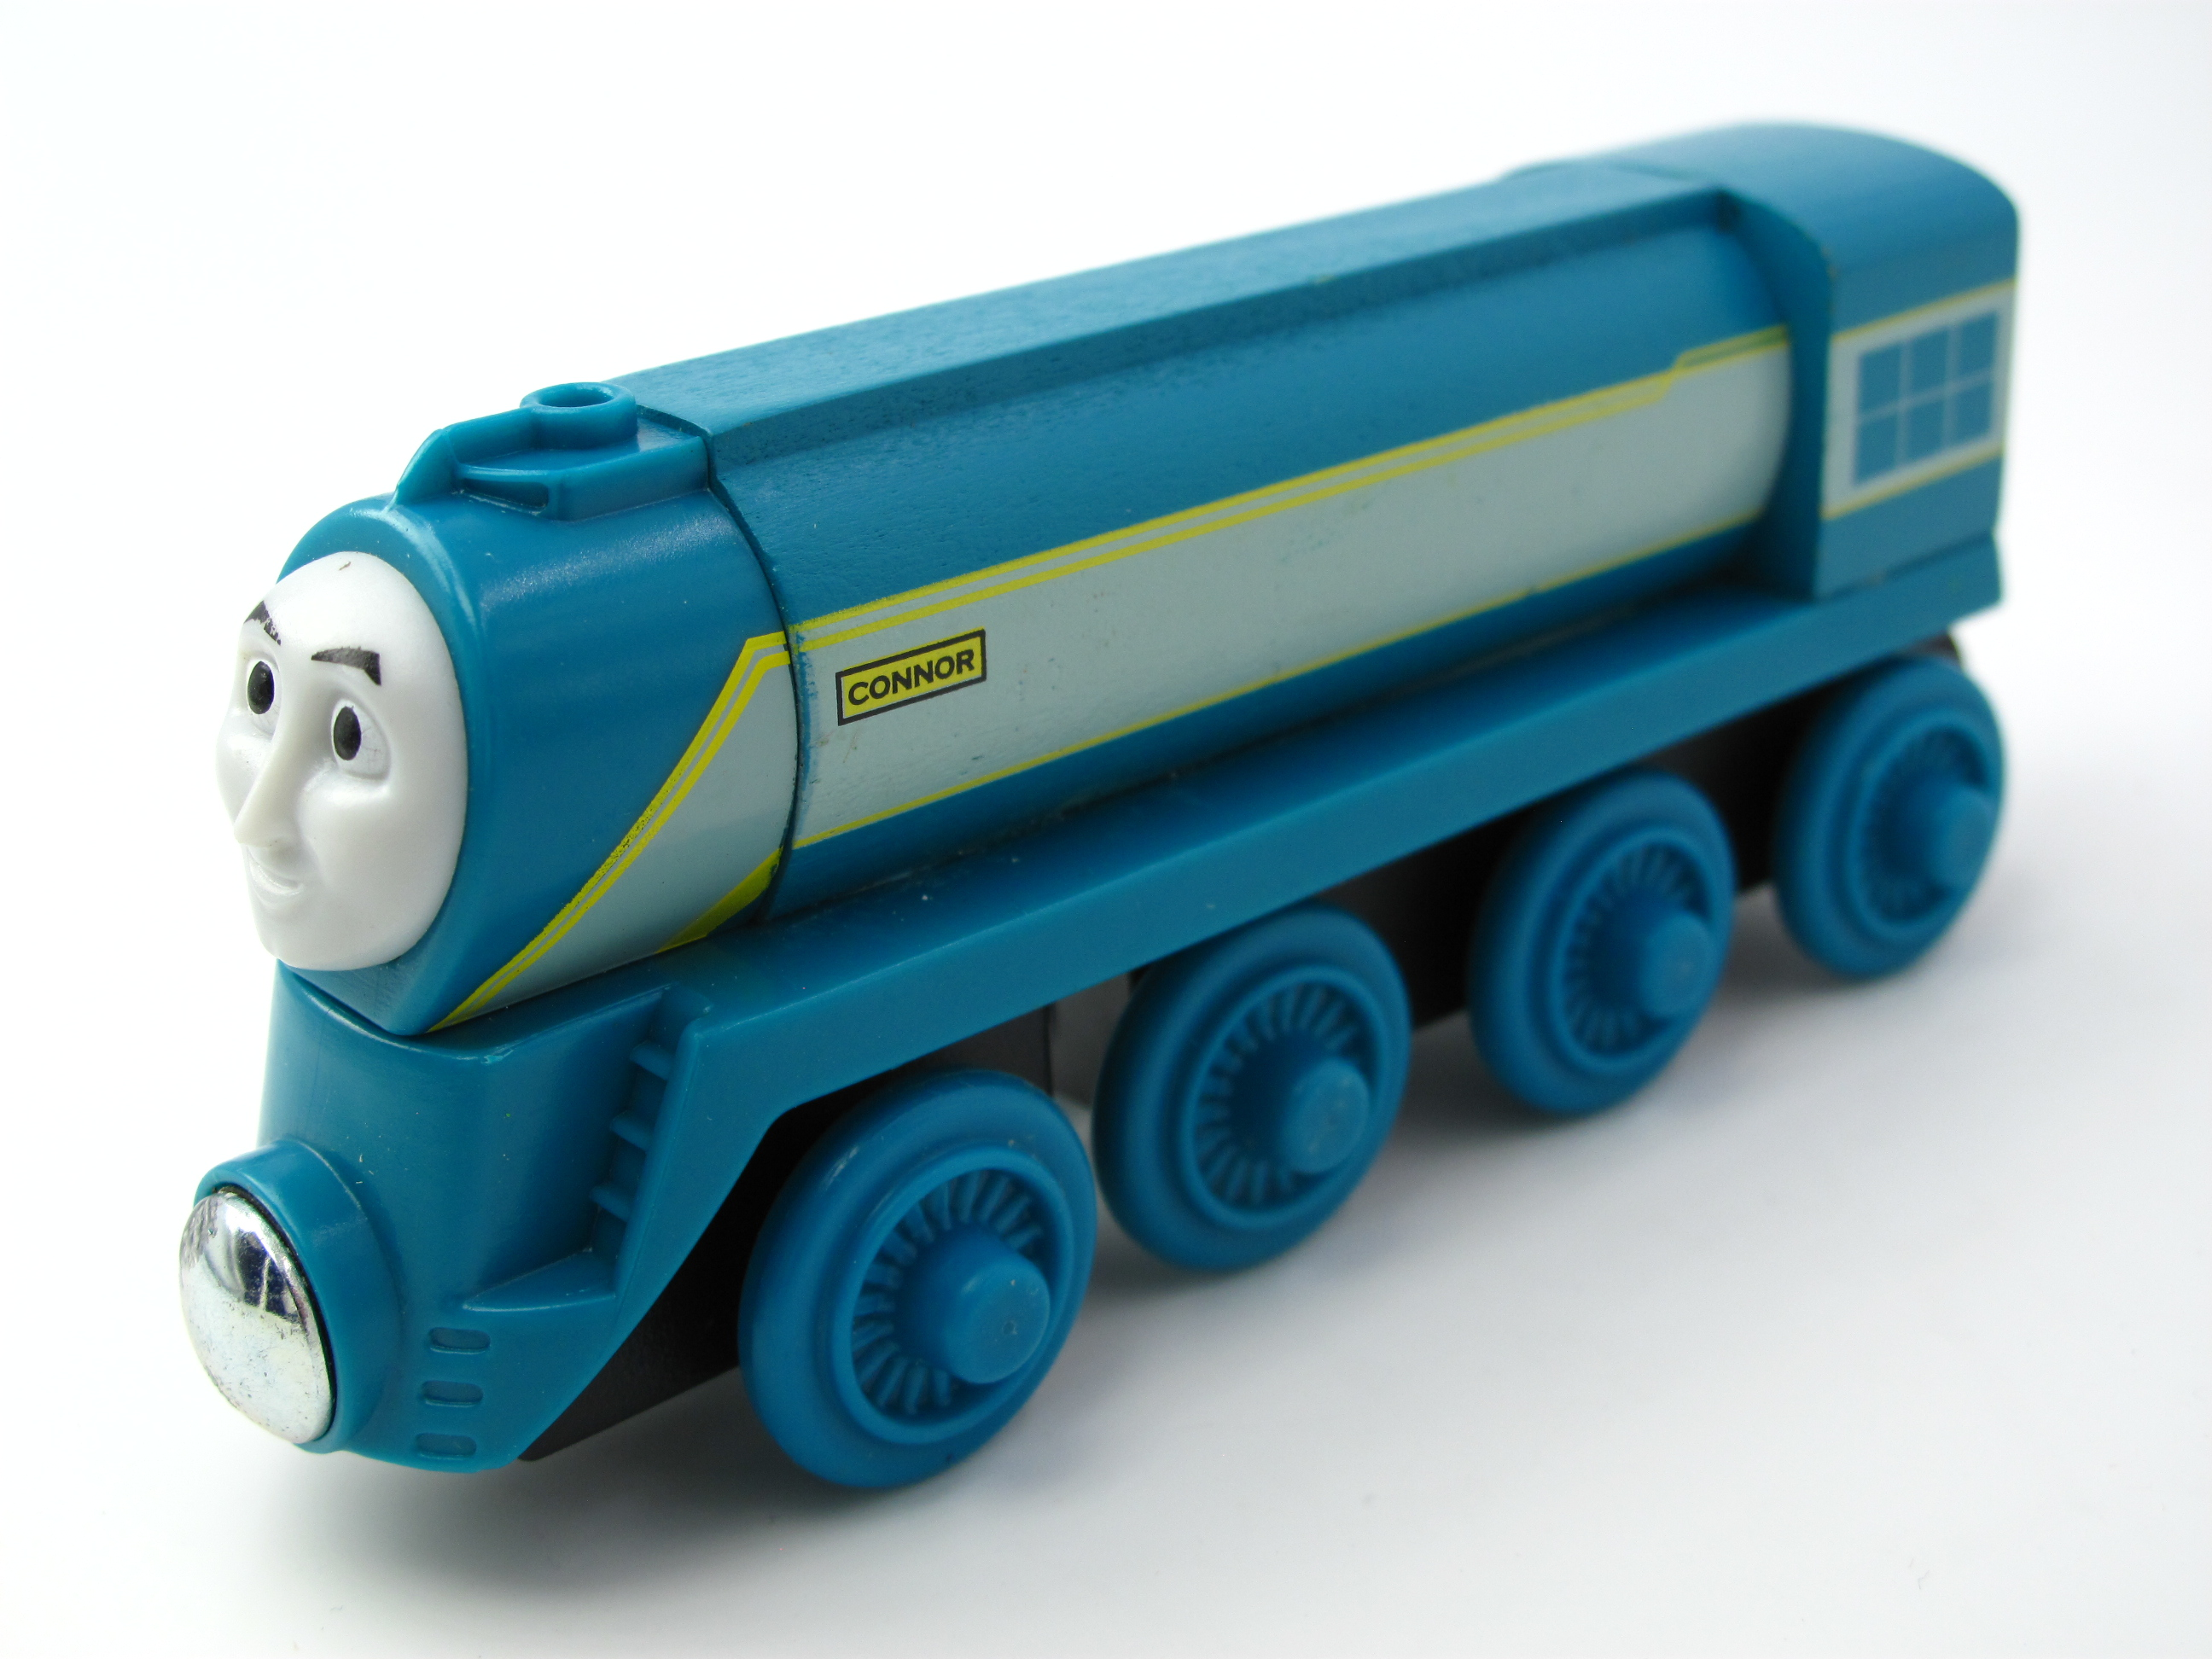 Wooden Thomas Train T030W CONNOR Thomas And Friends Trackmaster Magnetic Tomas Truck Car Locomotive Engine Railway Toys for Boys